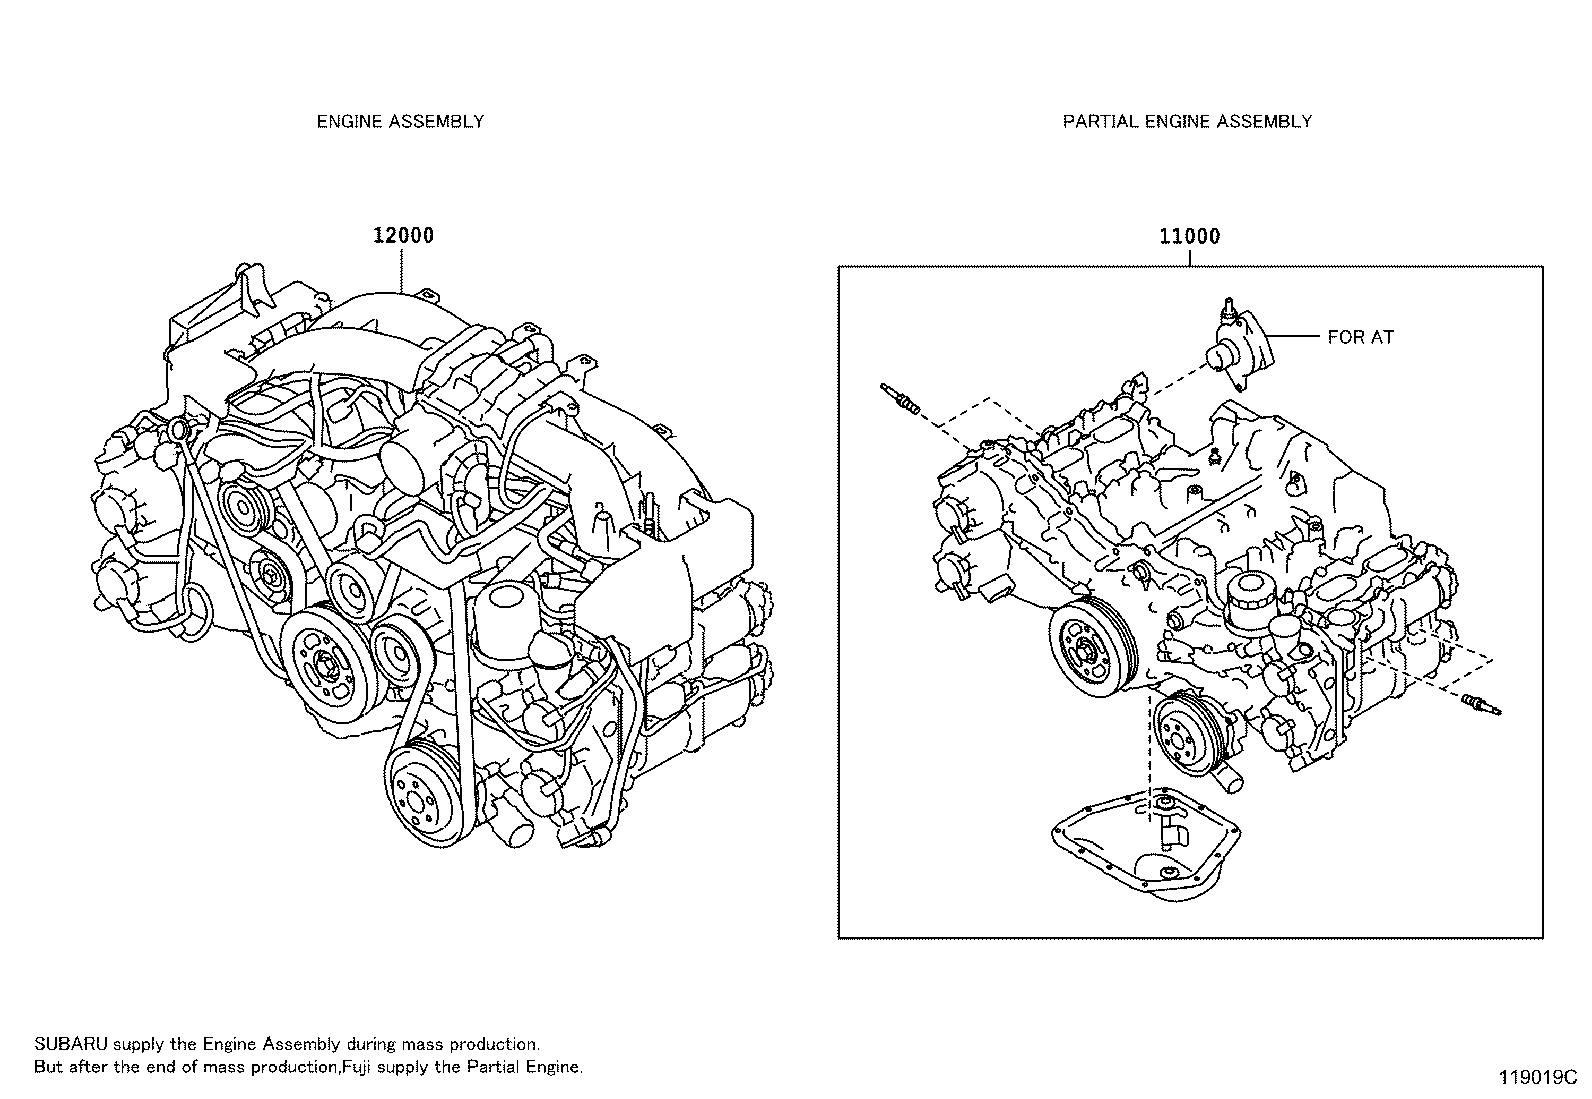 Scion FR-S Engine assembly. Partial, components